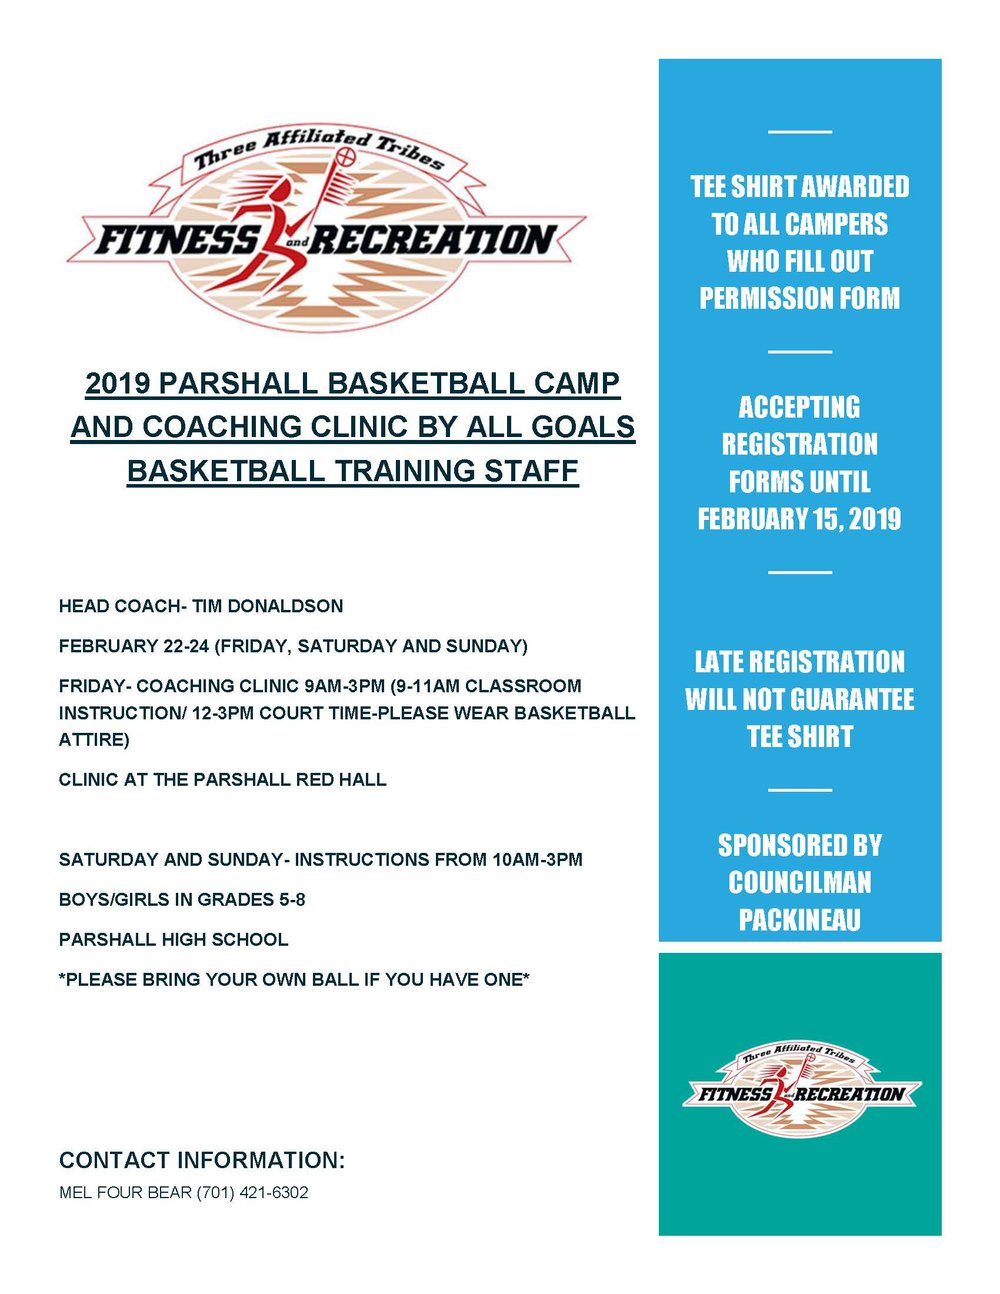 Parshall Basketball Camp Feb 2019.jpg